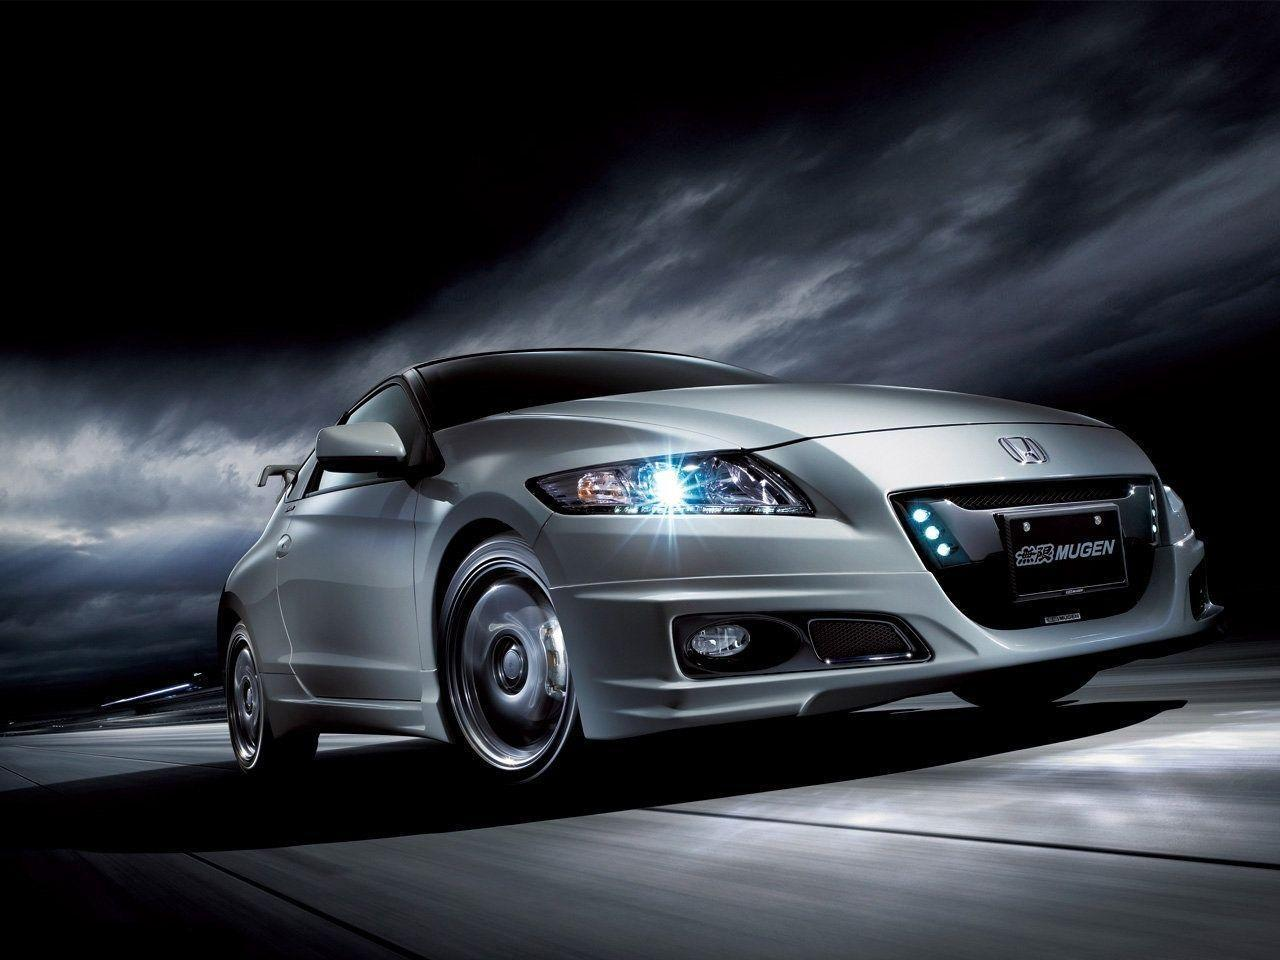 HD Honda Backgrounds & Honda Wallpapers Image For Download